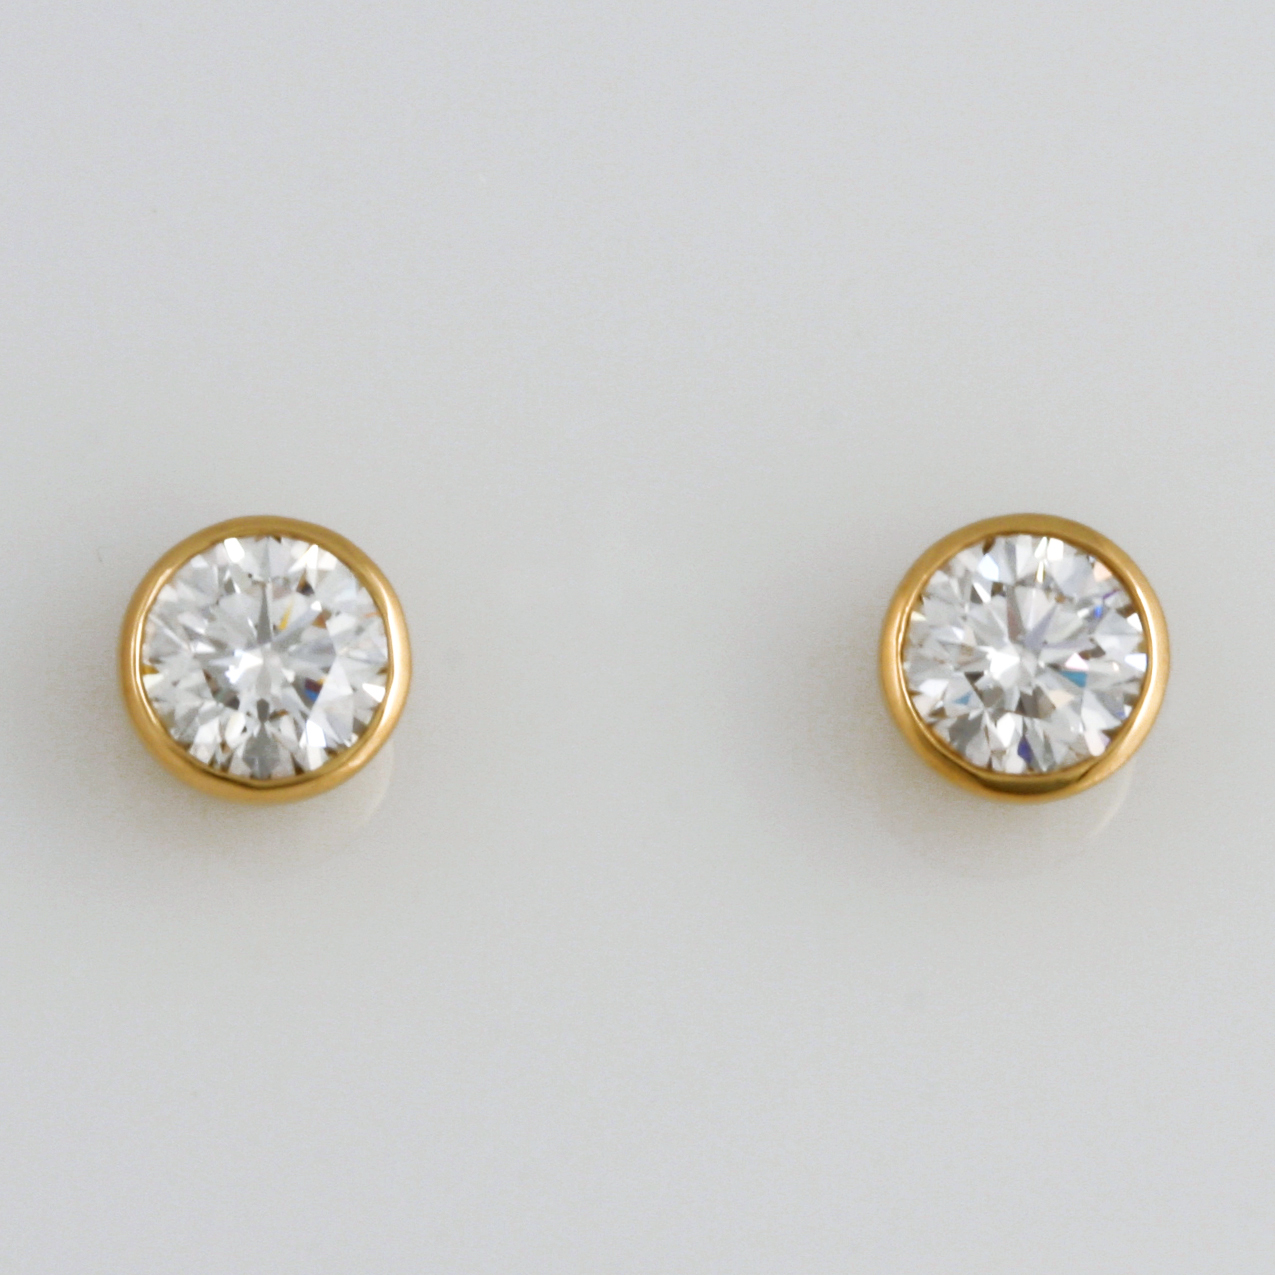 18ct yellow gold stud earrings featuring 0.75ct diamonds in each and threaded post